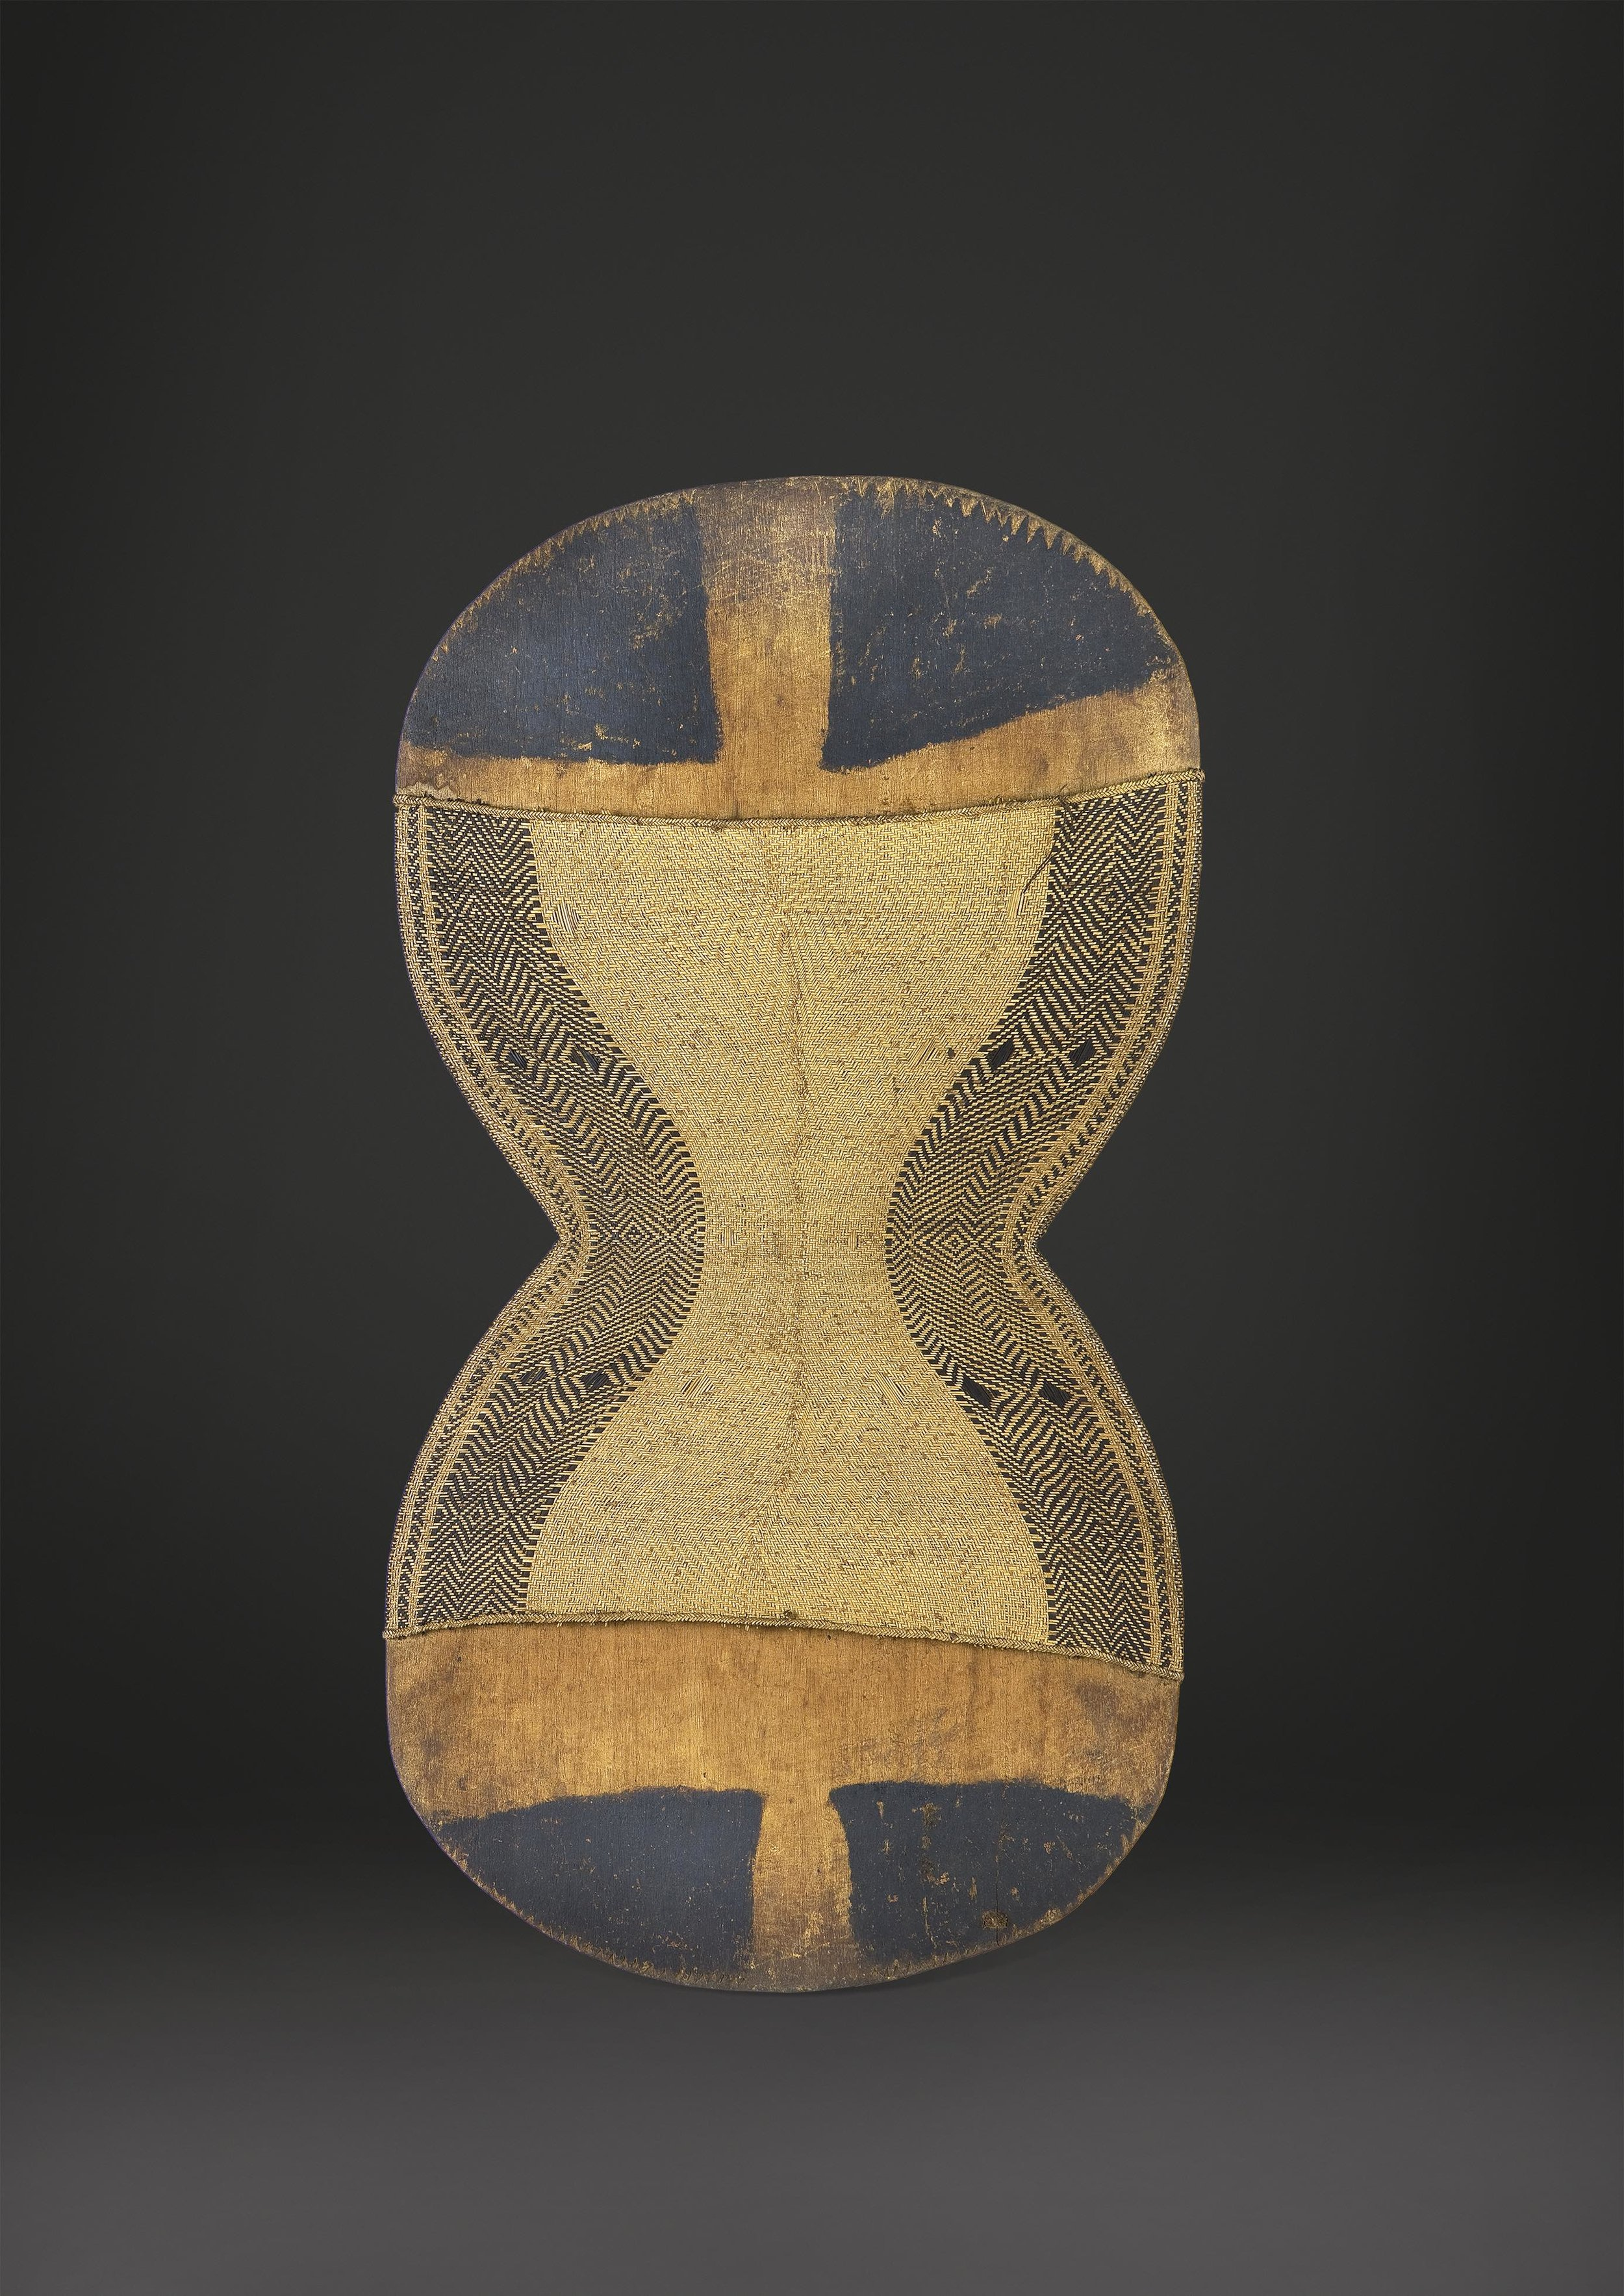 Motu or Malu, Central Province, New Guinea, 19th century. Image courtesy of Bill Evans